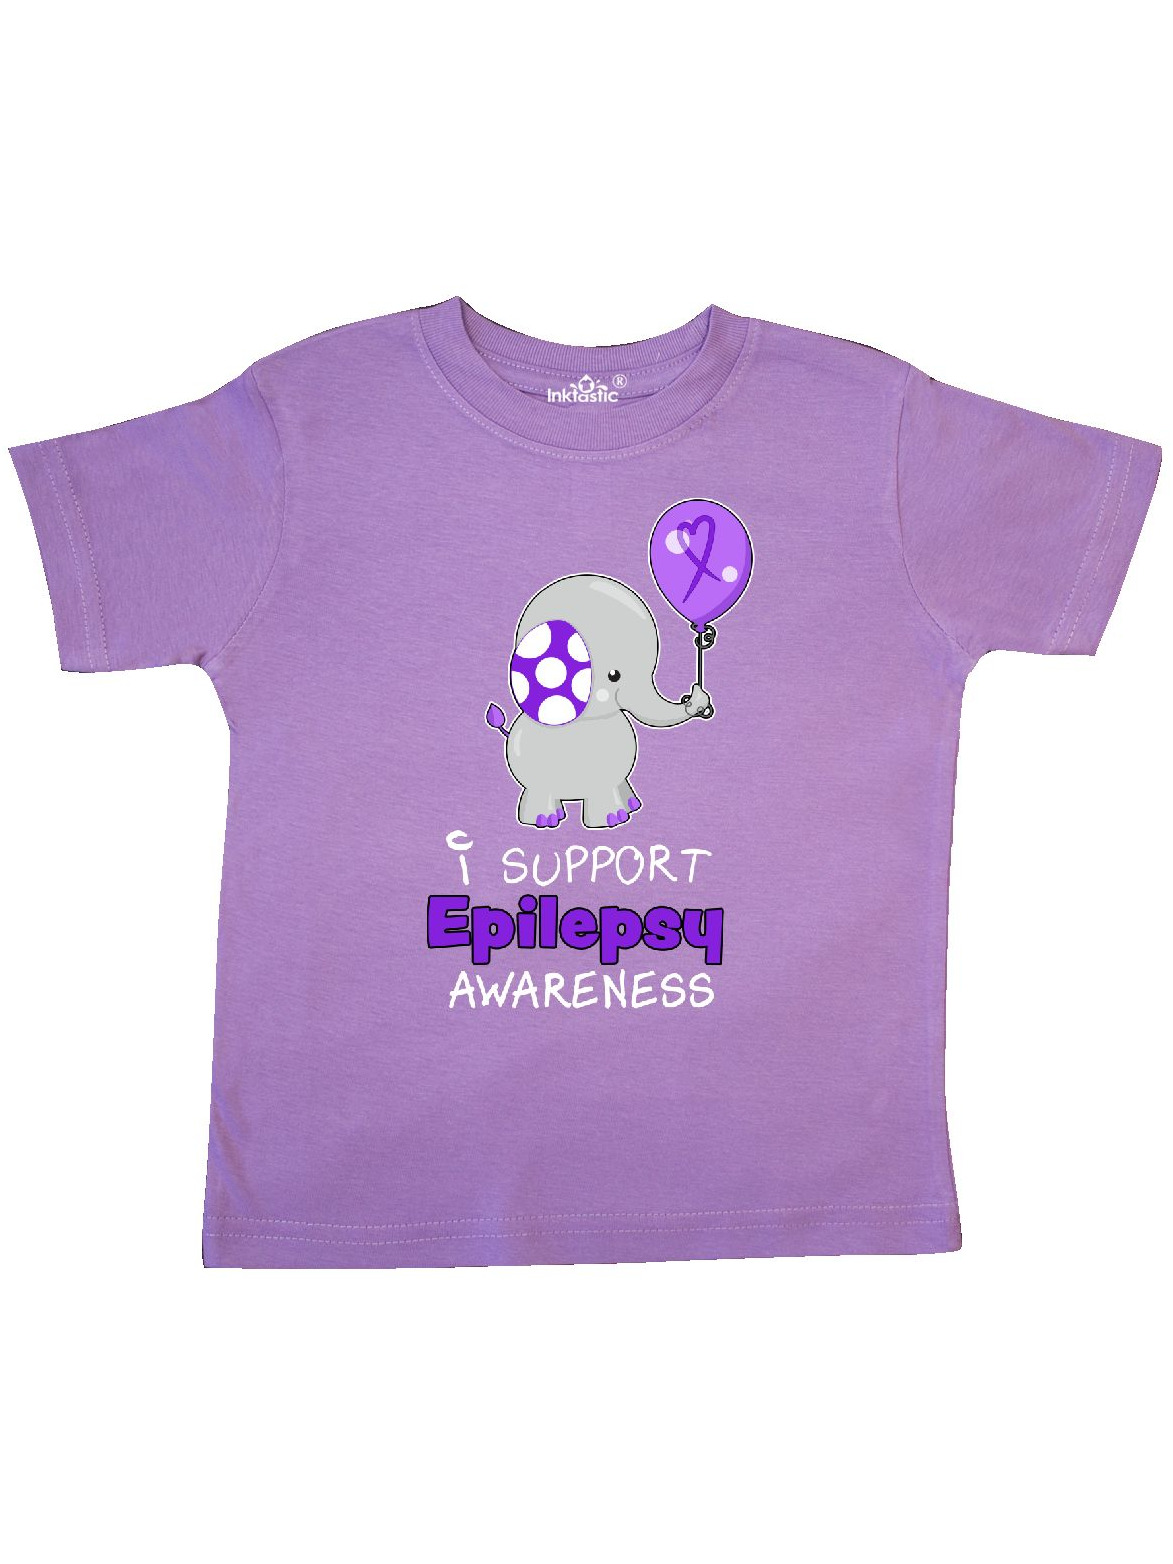 inktastic This Kid Supports Epilepsy Awareness Toddler T-Shirt